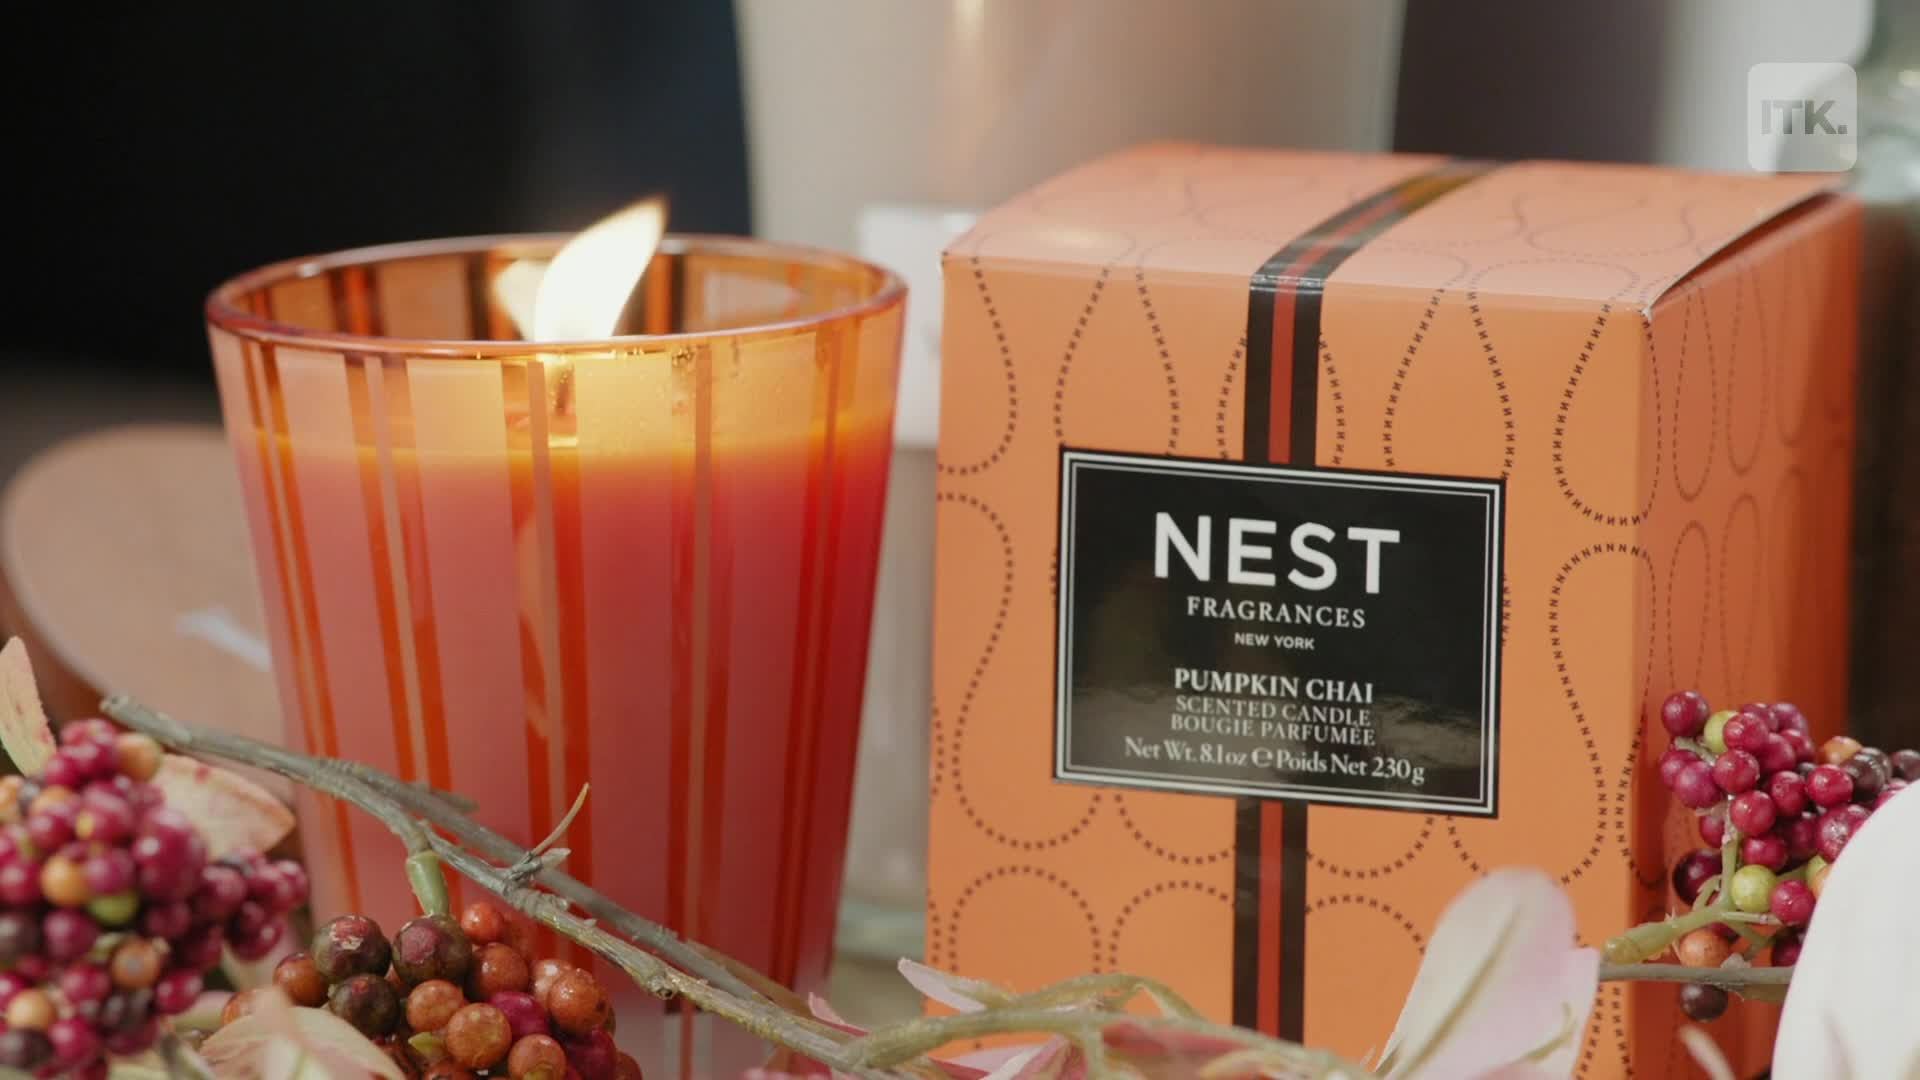 Add to Cart: These cozy candles will get you in the autumn spirit